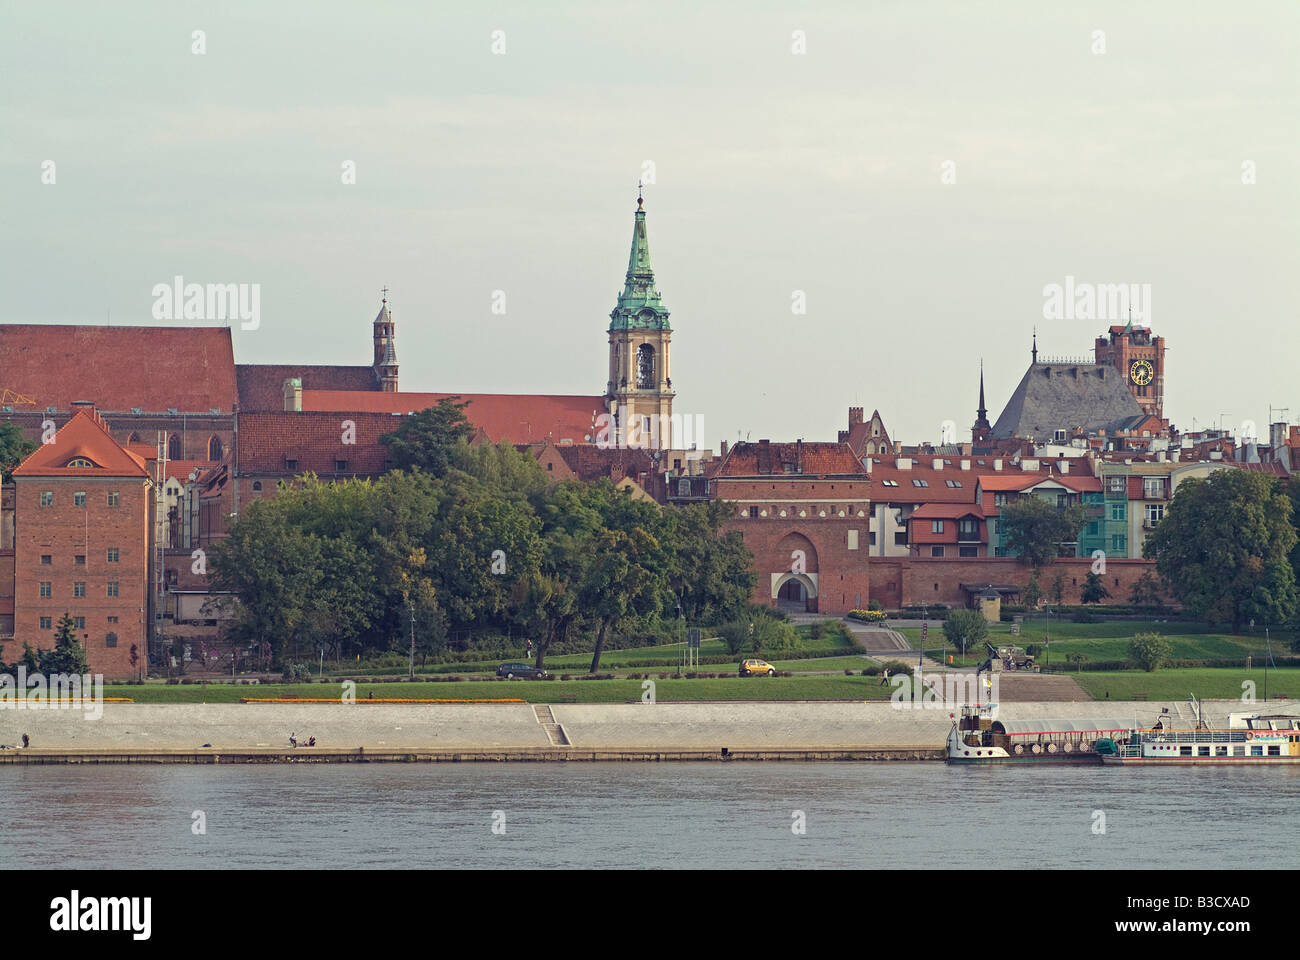 Old Town overlooking Vistula River with two ships for tourists Torun Poland - Stock Image